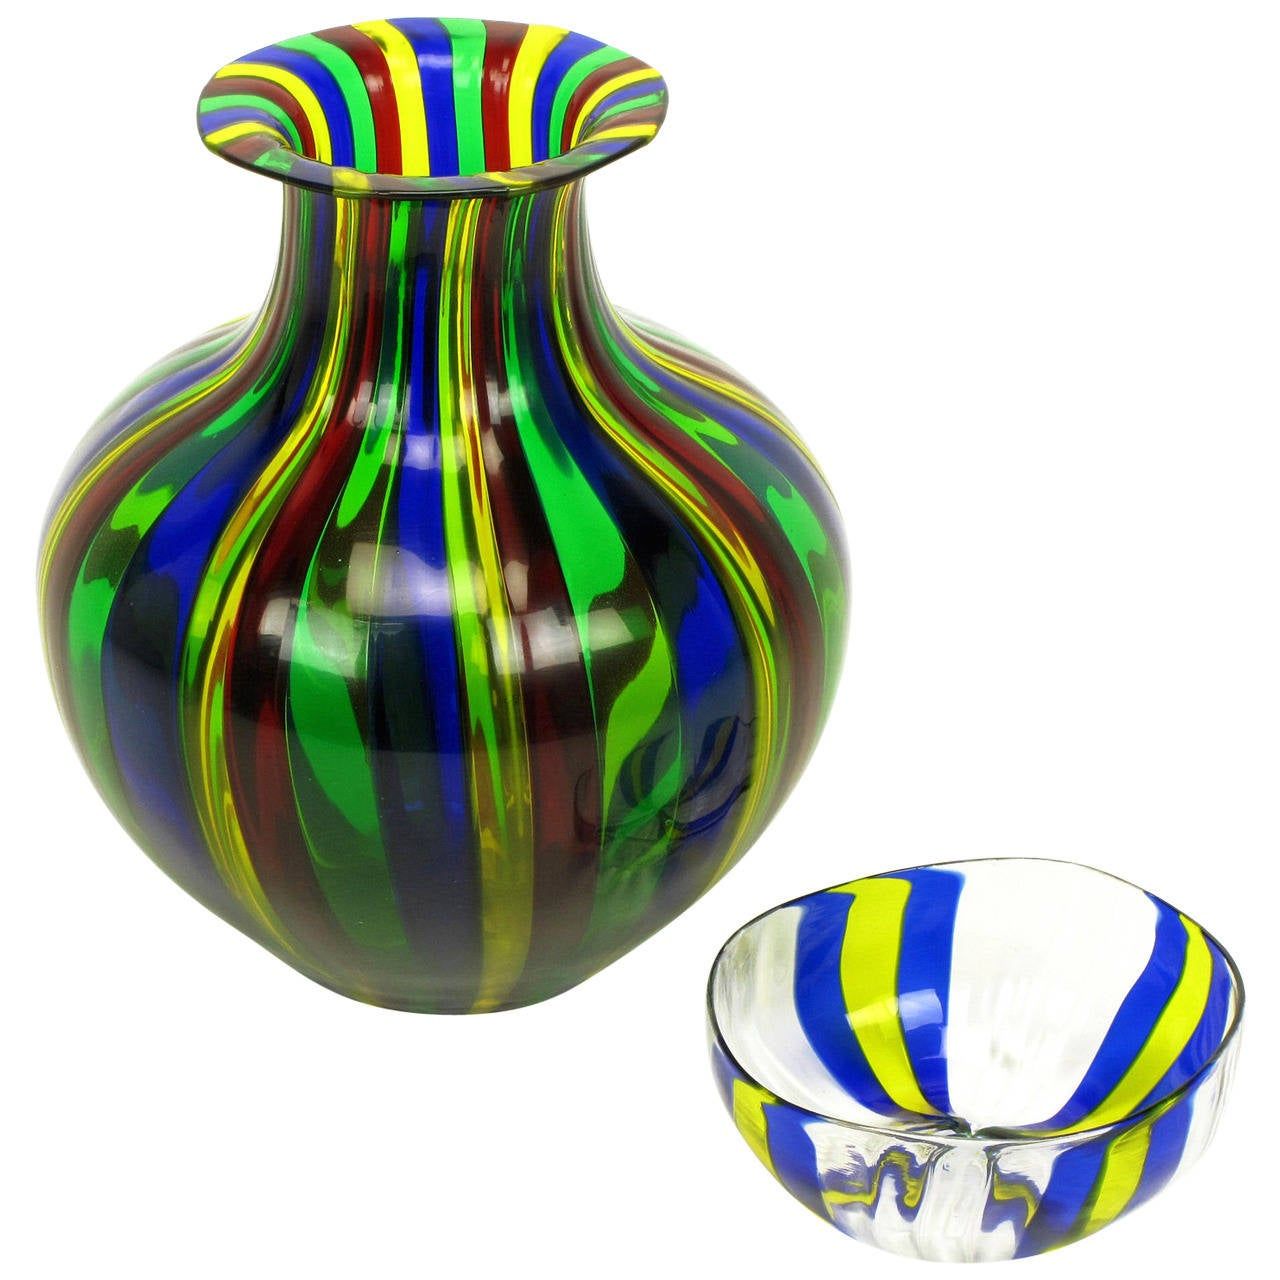 Italian Handblown Art Glass Vase with Bowl by Oggetti